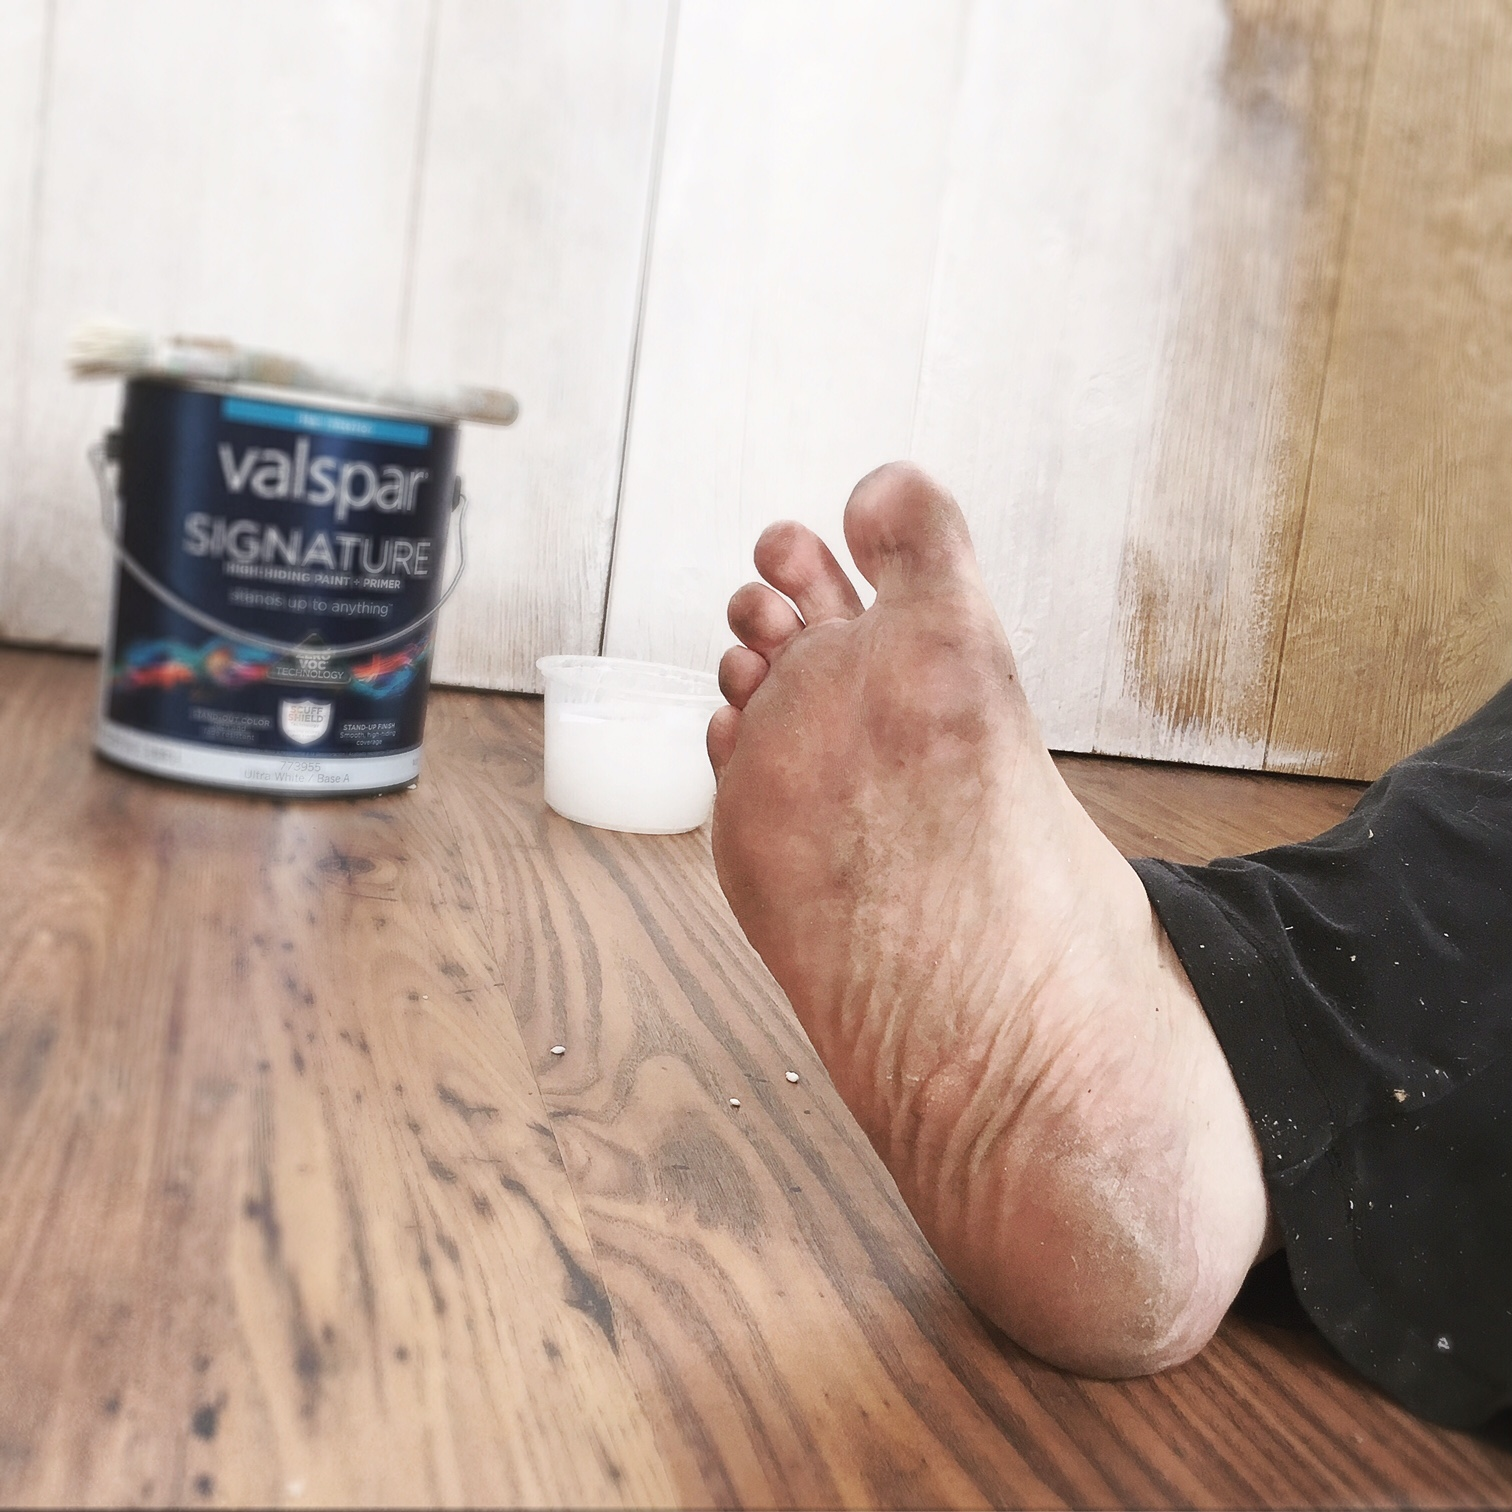 Filthy feet and white paint. The side walls are all up, and I applied a white wash technique to sell the barn wood look.